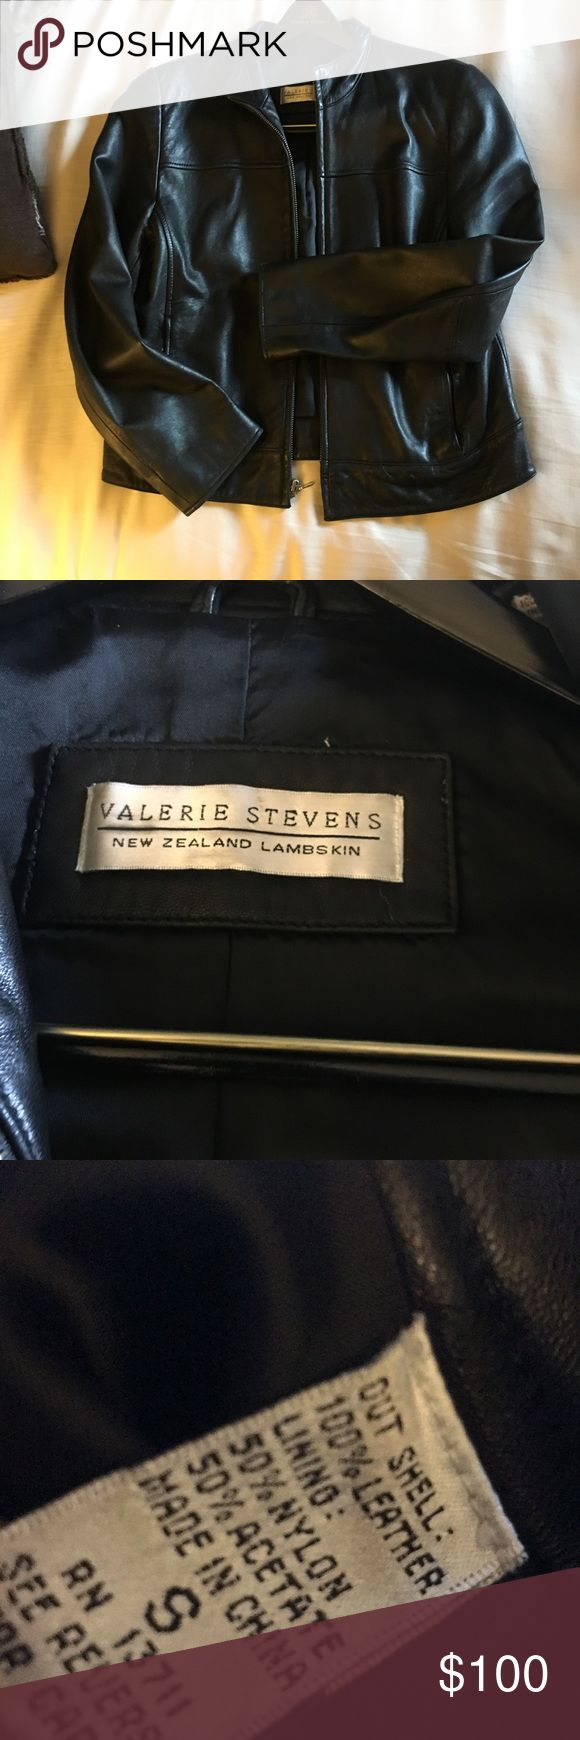 Lambskin leather jacket Black/ like new size small 100% leather Valerie Stevens Jackets & Coats